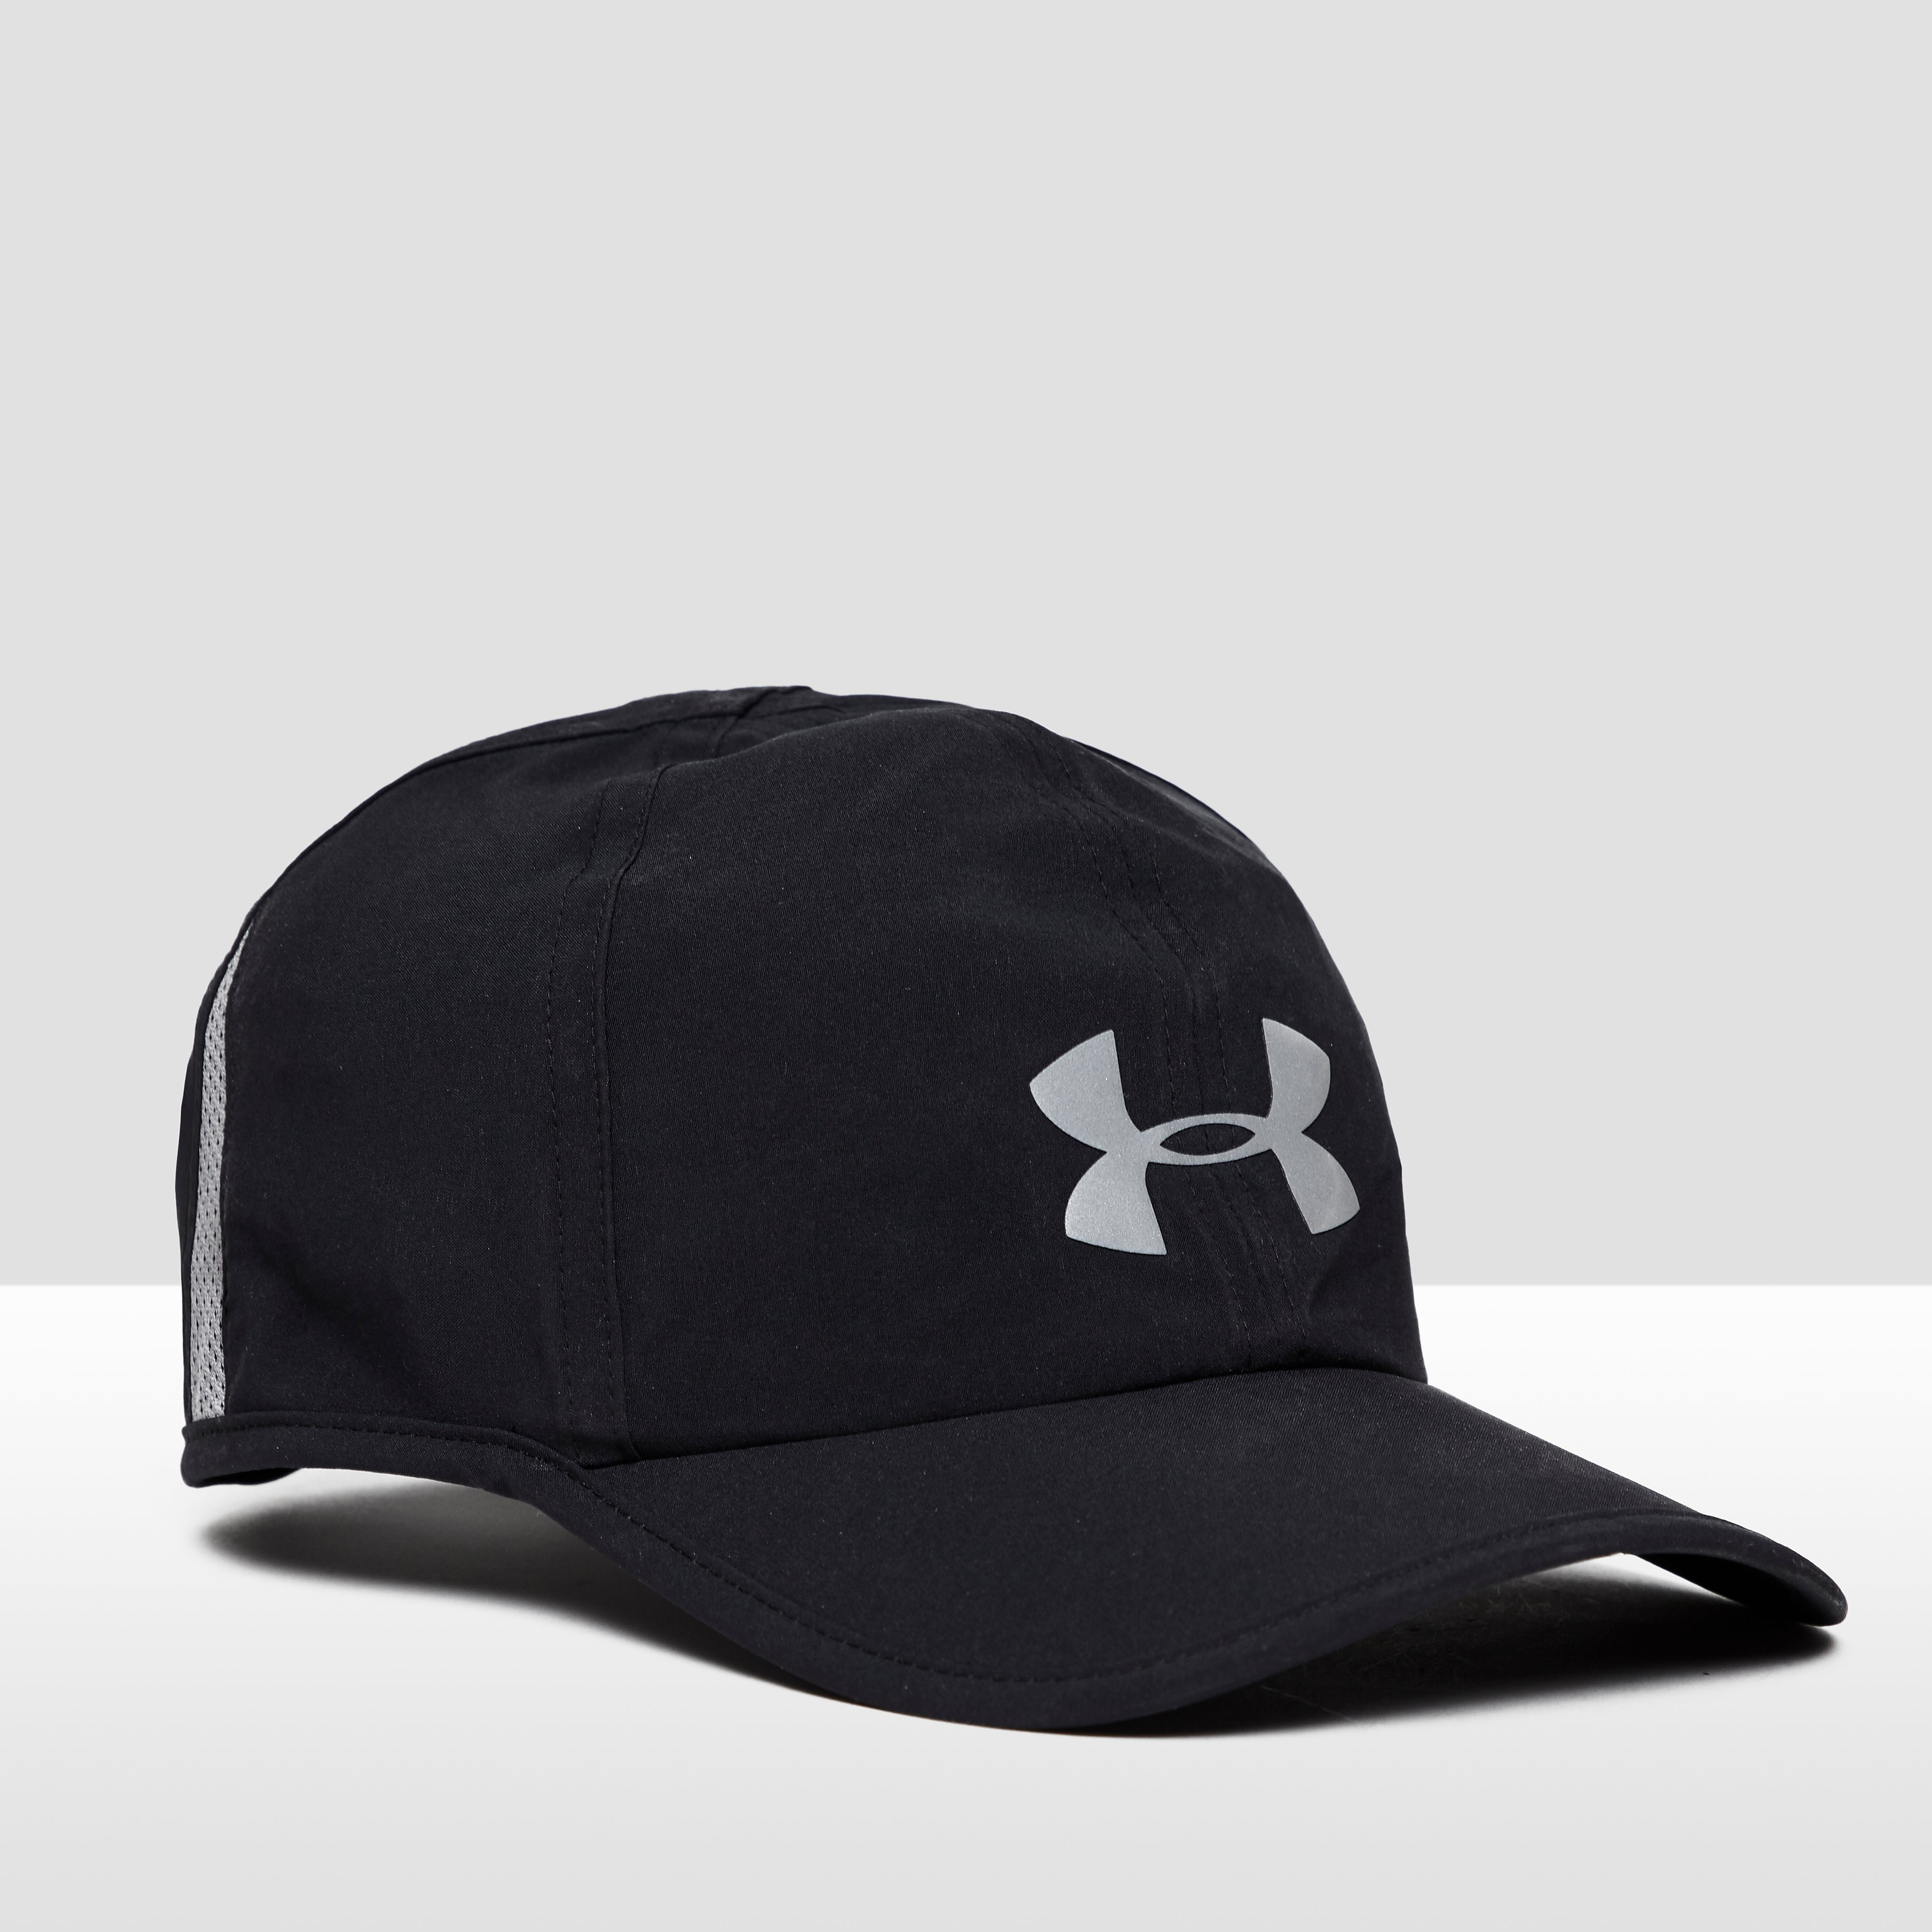 Under Armour SHADOW 3.0 PET